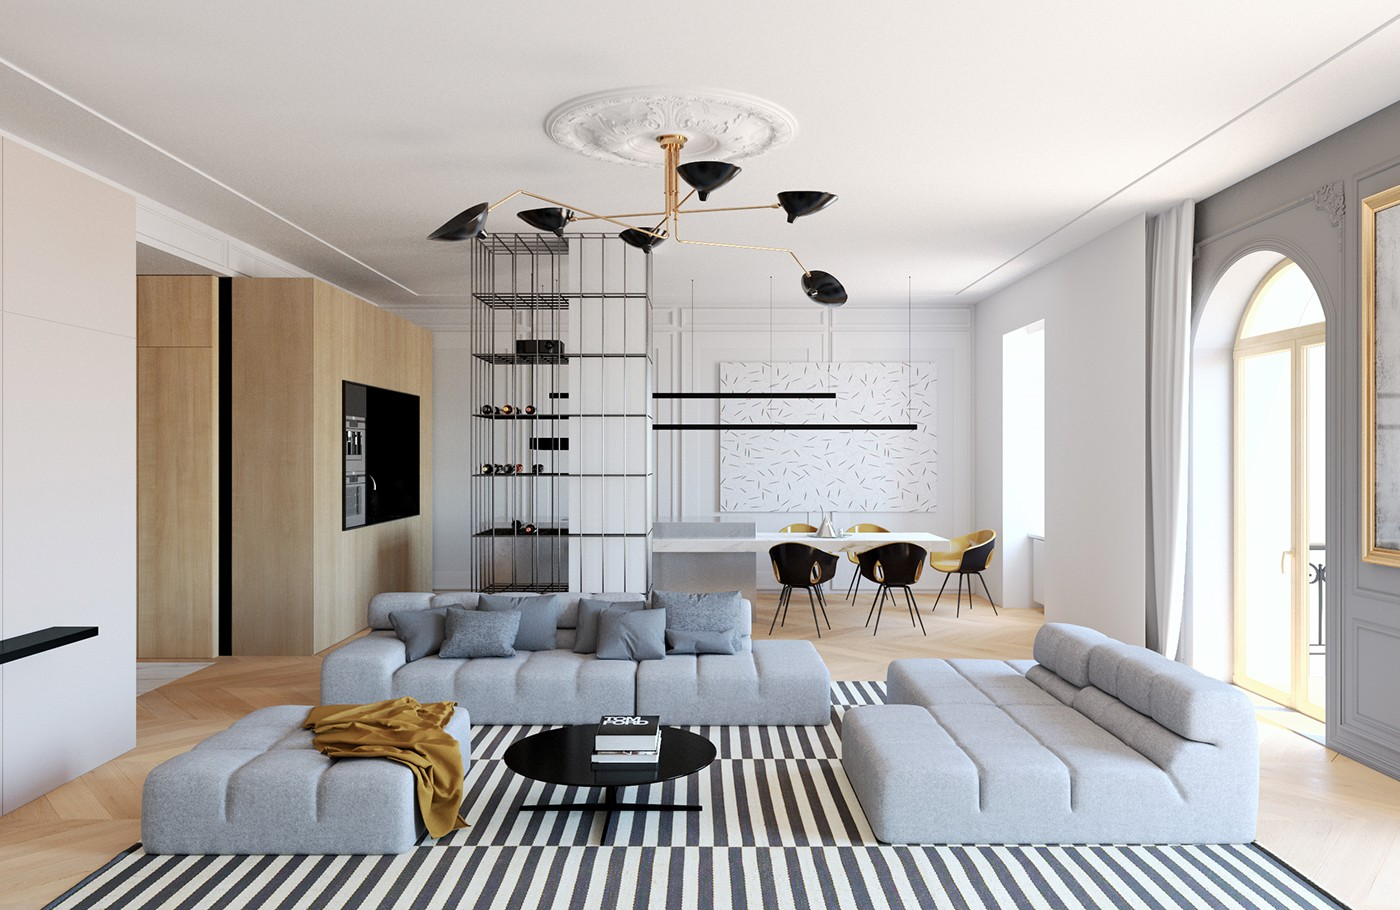 Modern Decor How To Arrange A Trendy Minimalist Home Design With Modern